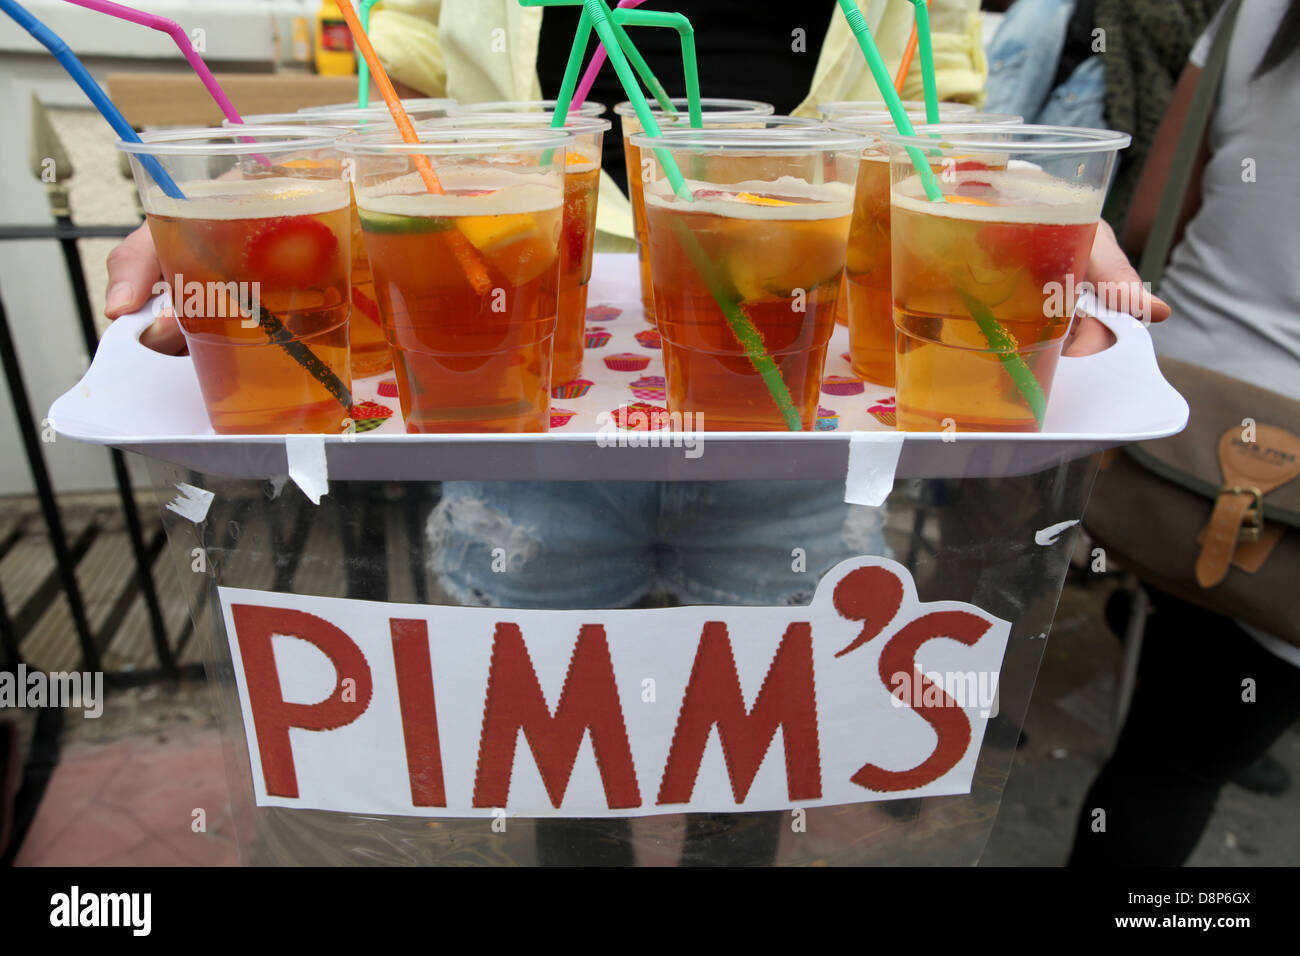 Glasses of Pimm's on a tray - Stock Image